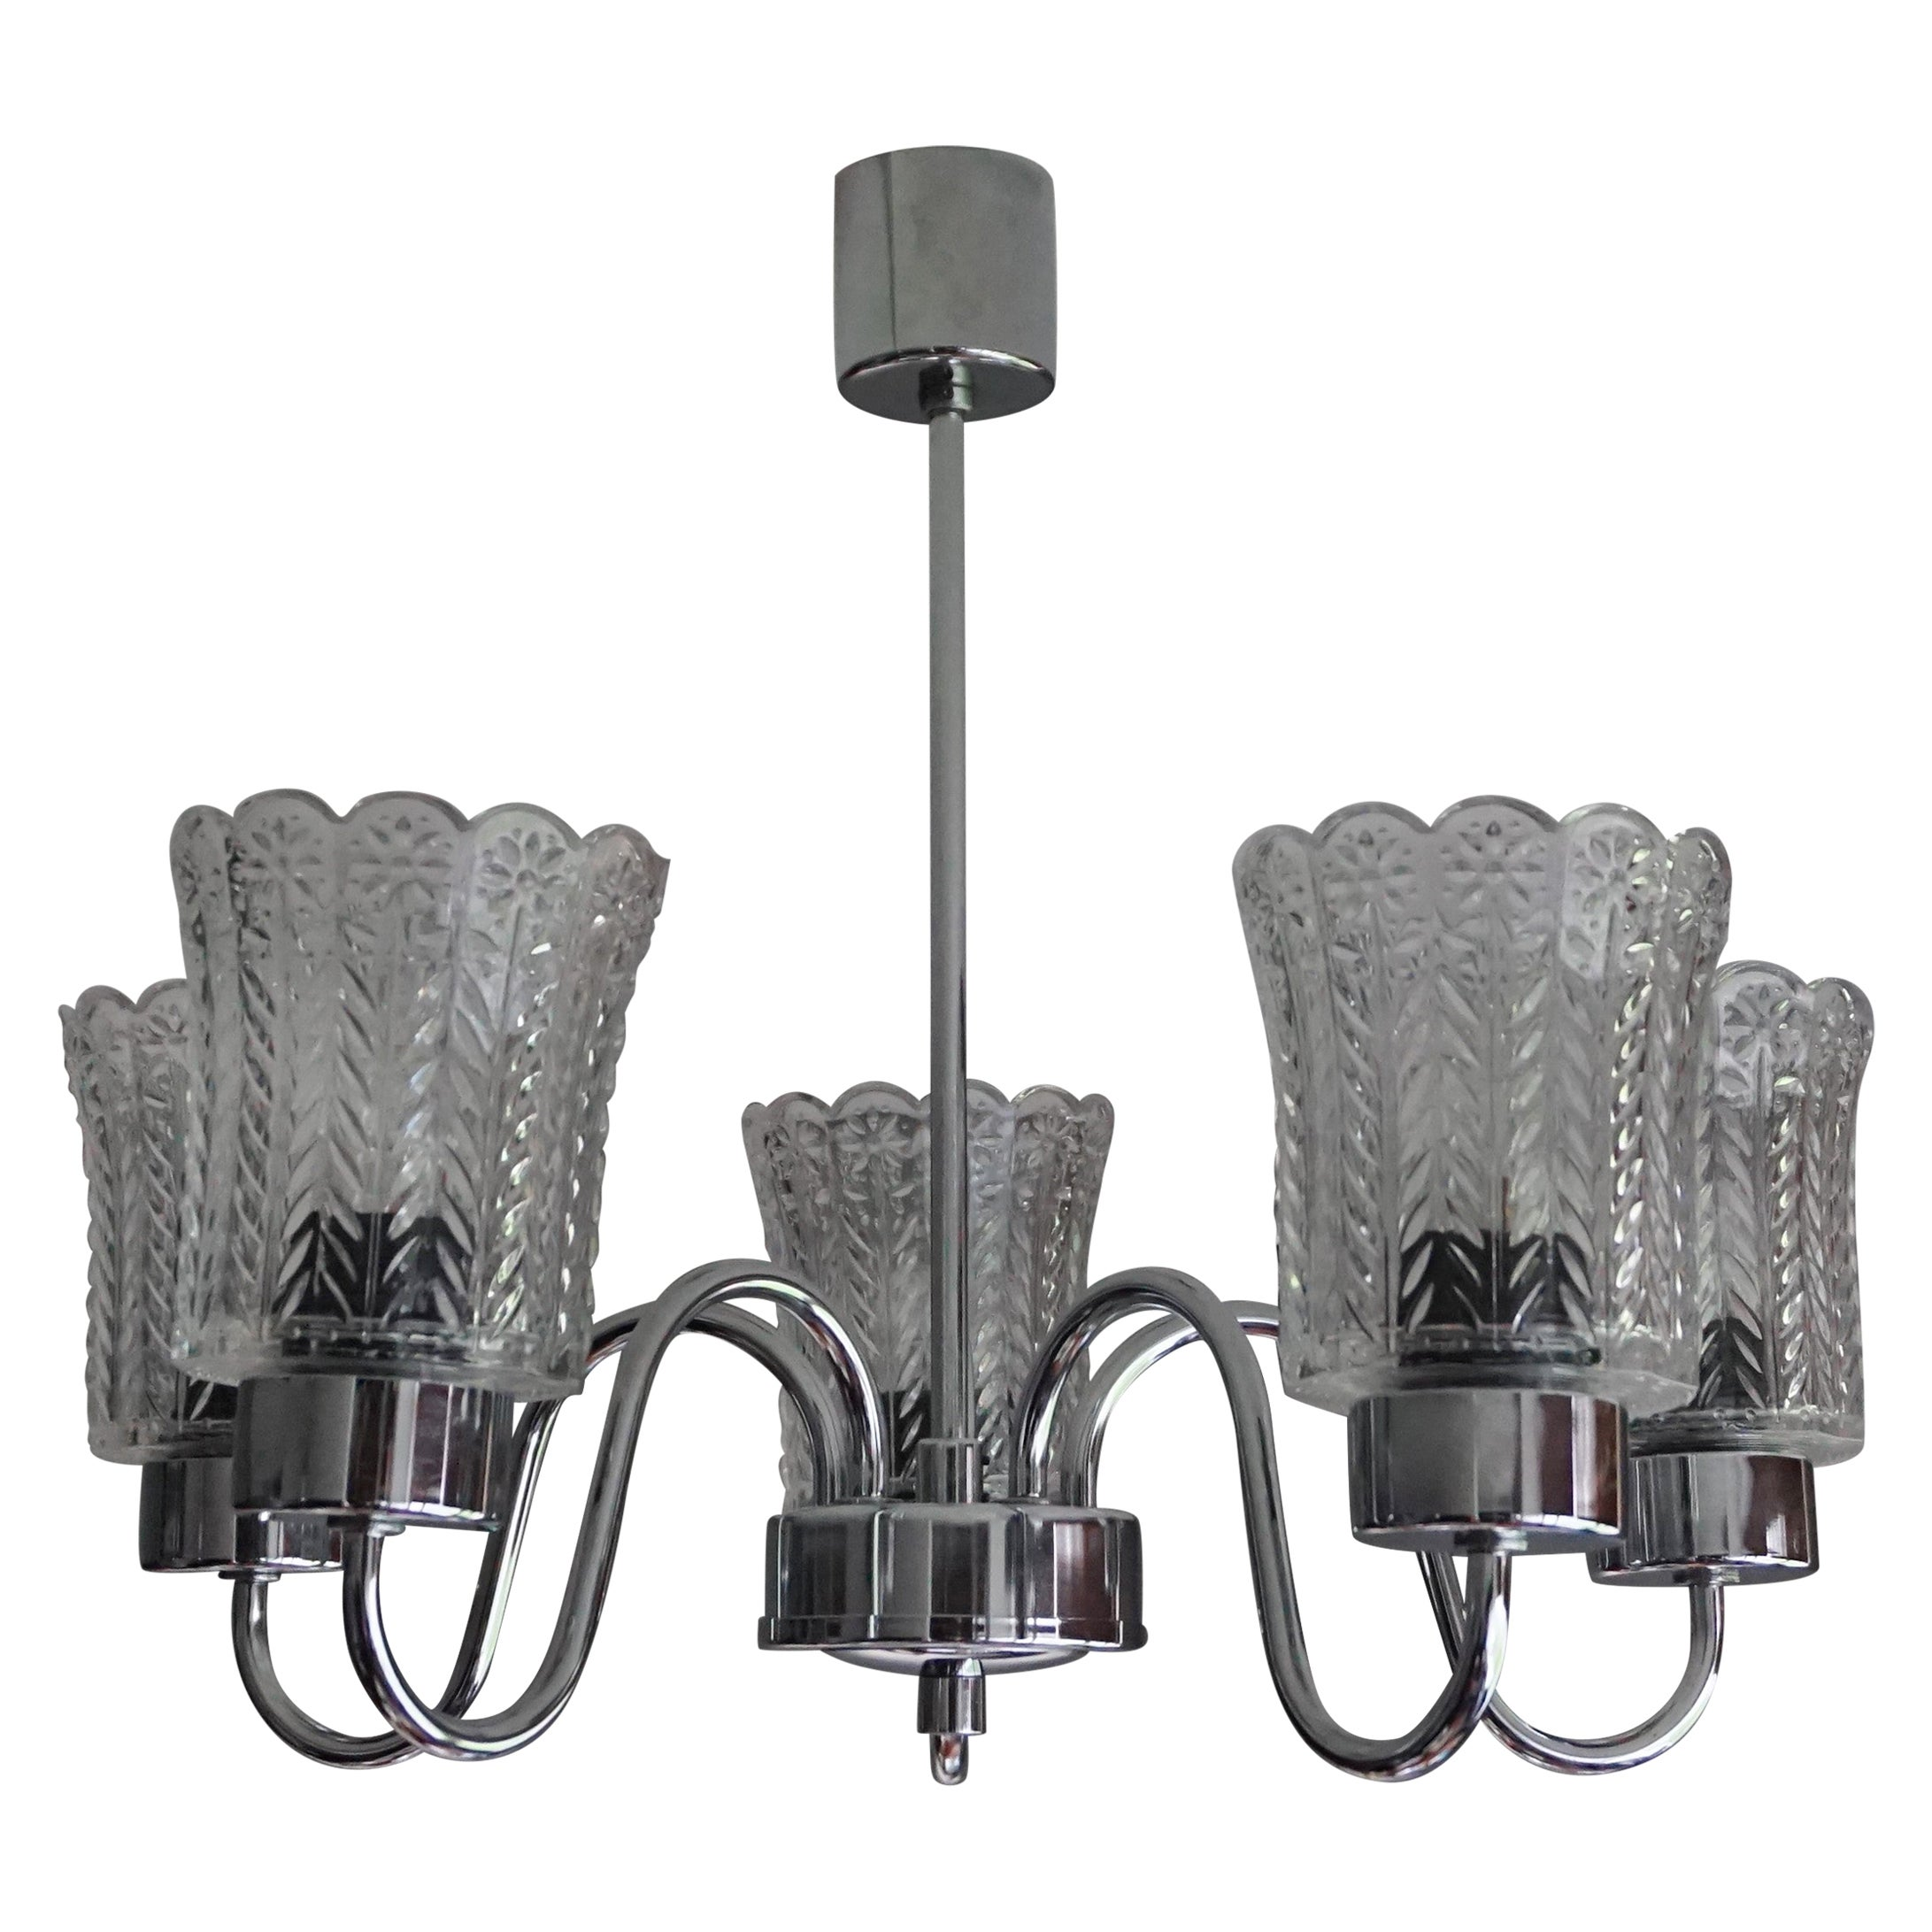 Mid-Century Modern Chrome and Glass Shades Pendant Light with Flower Patterns